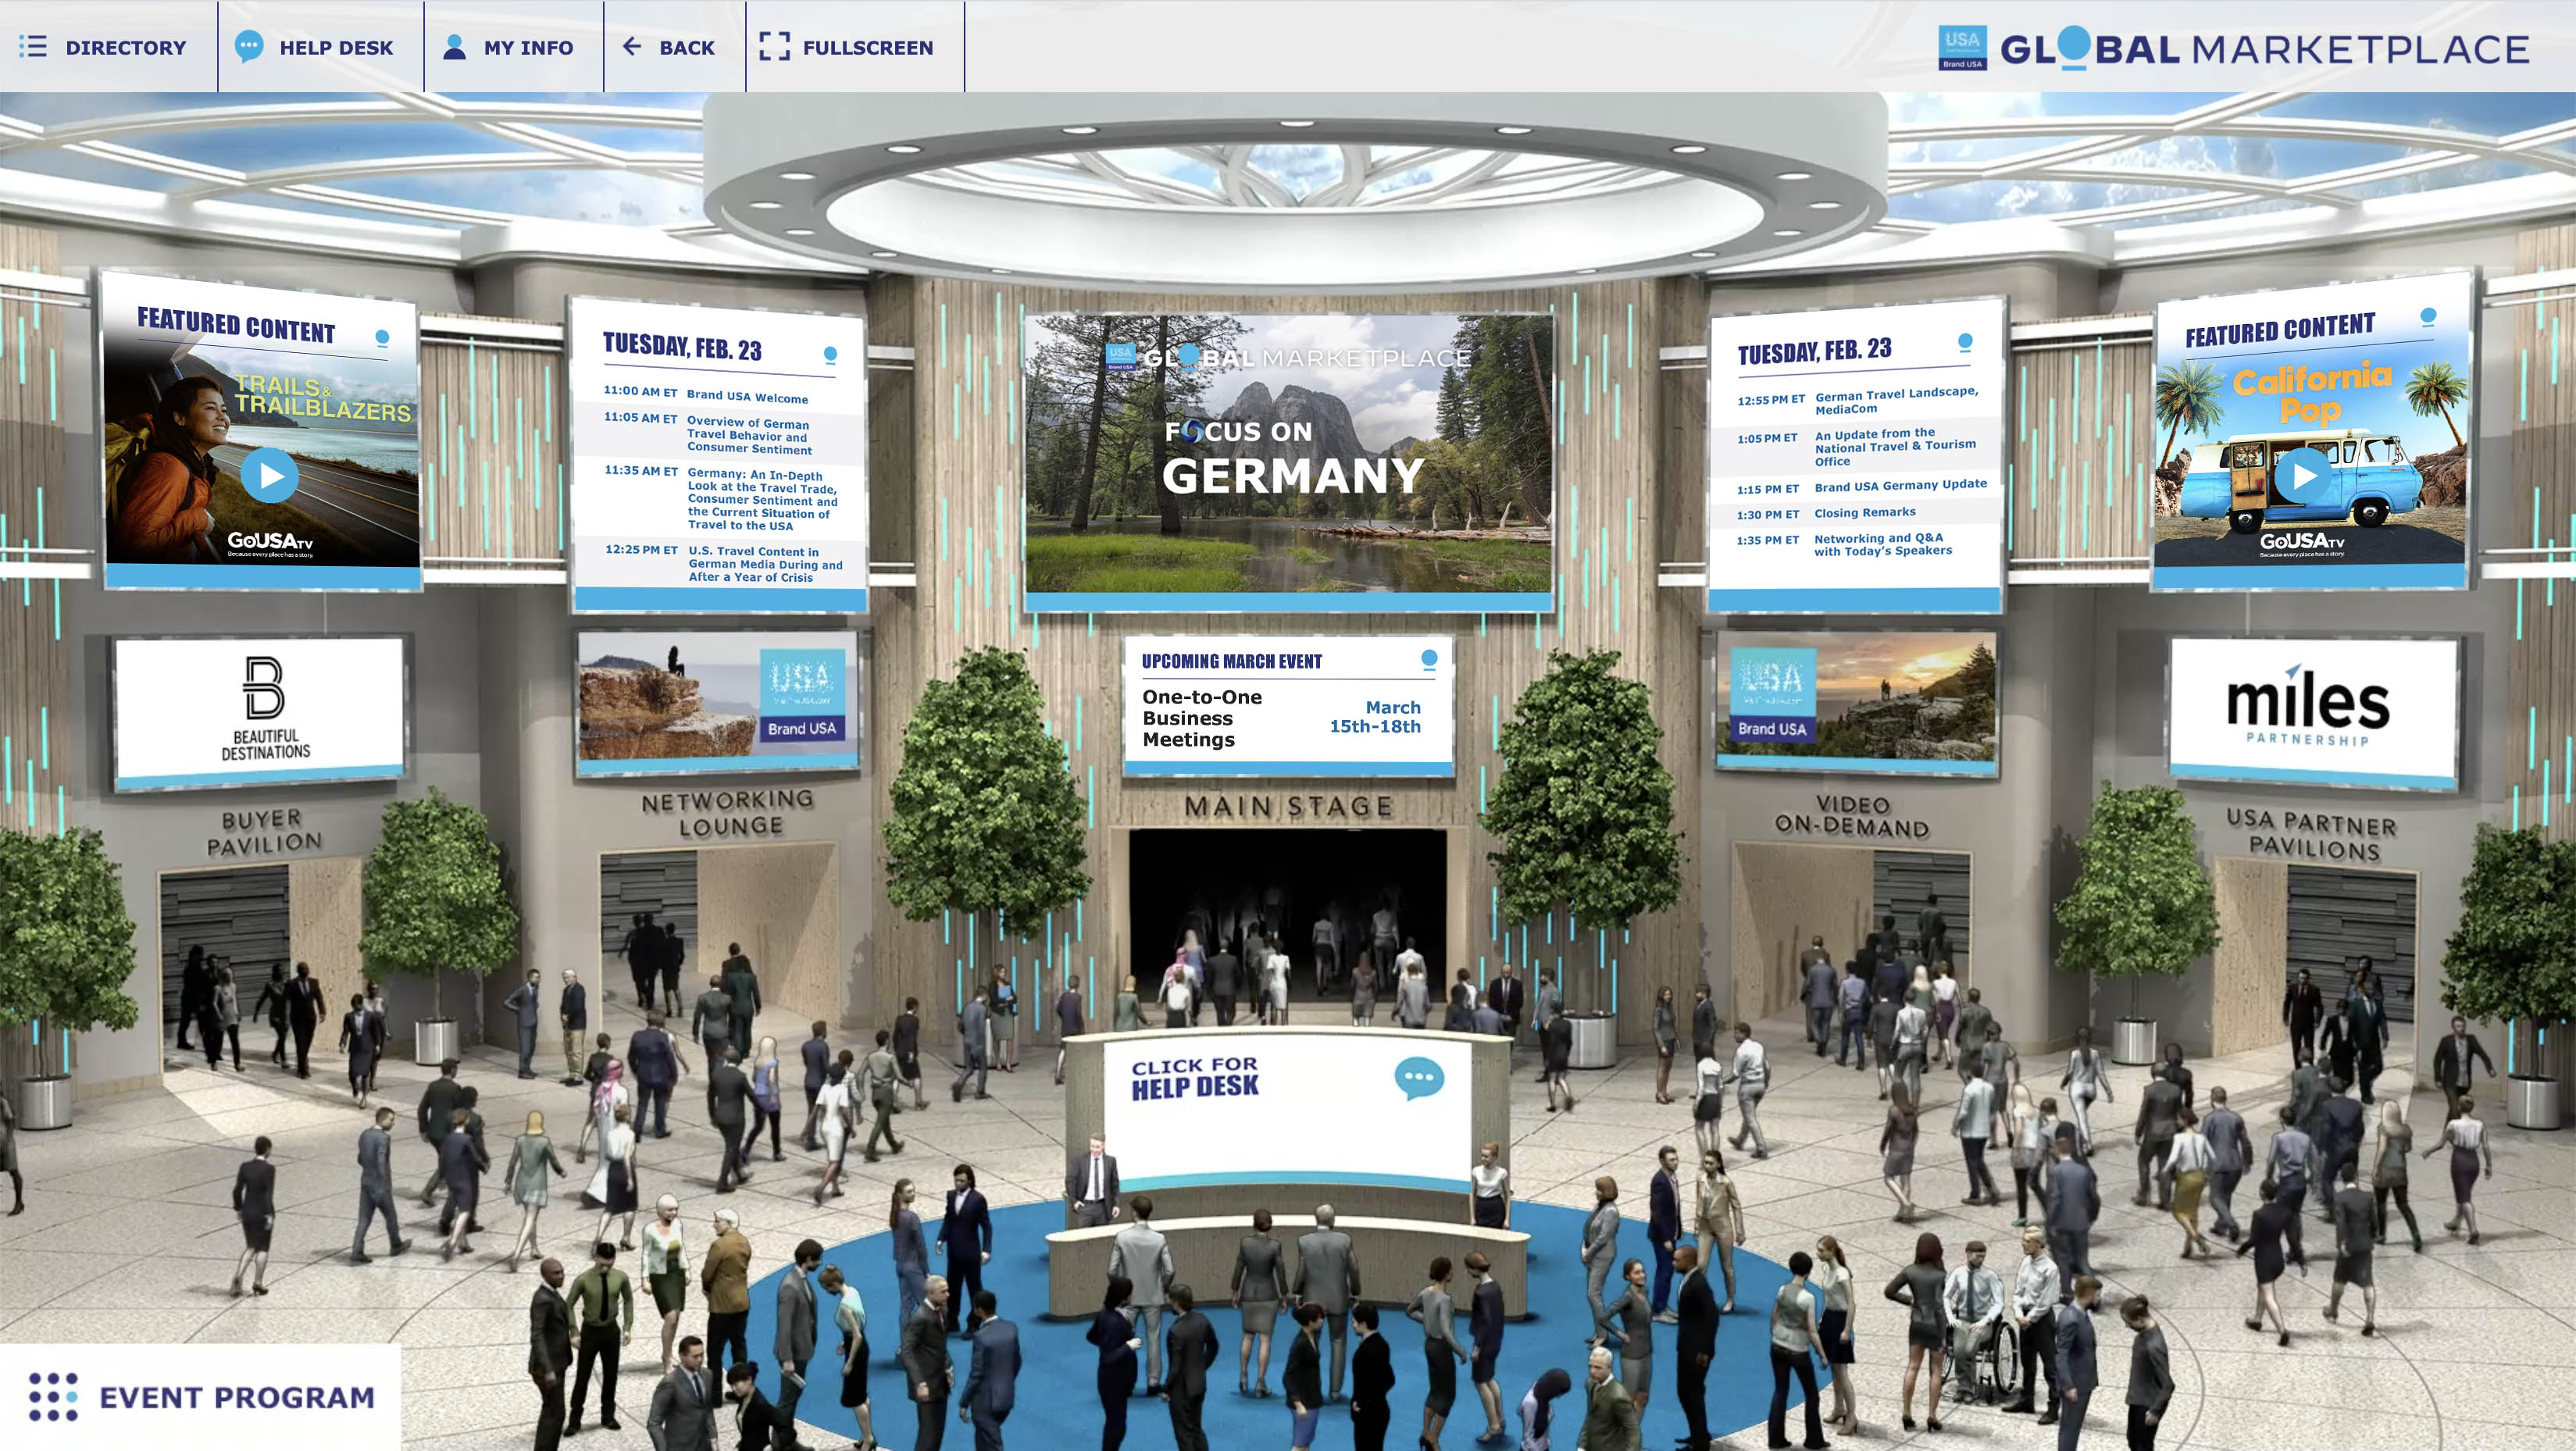 U.S. partners and member of the German travel trade connected via Brand USA Global Marketplace on February 23, 2021